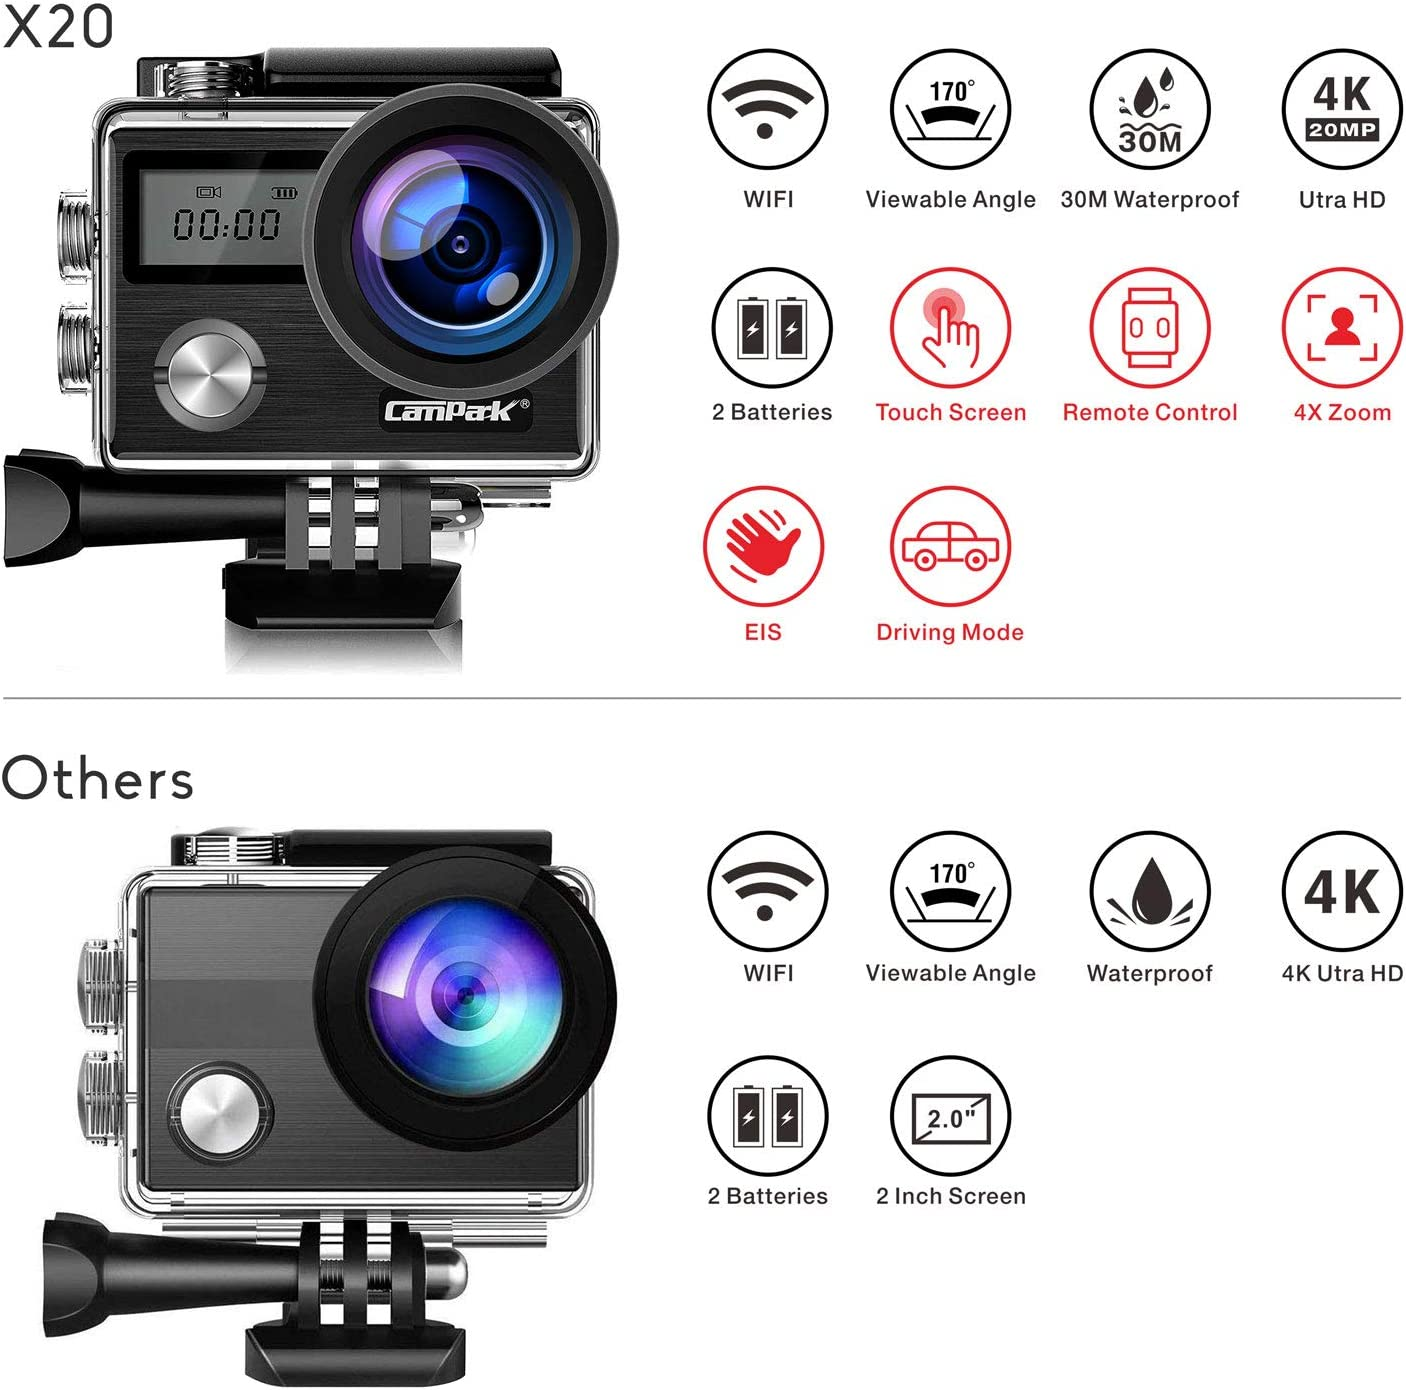 Campark X20 Specs compared to other Action Cameras